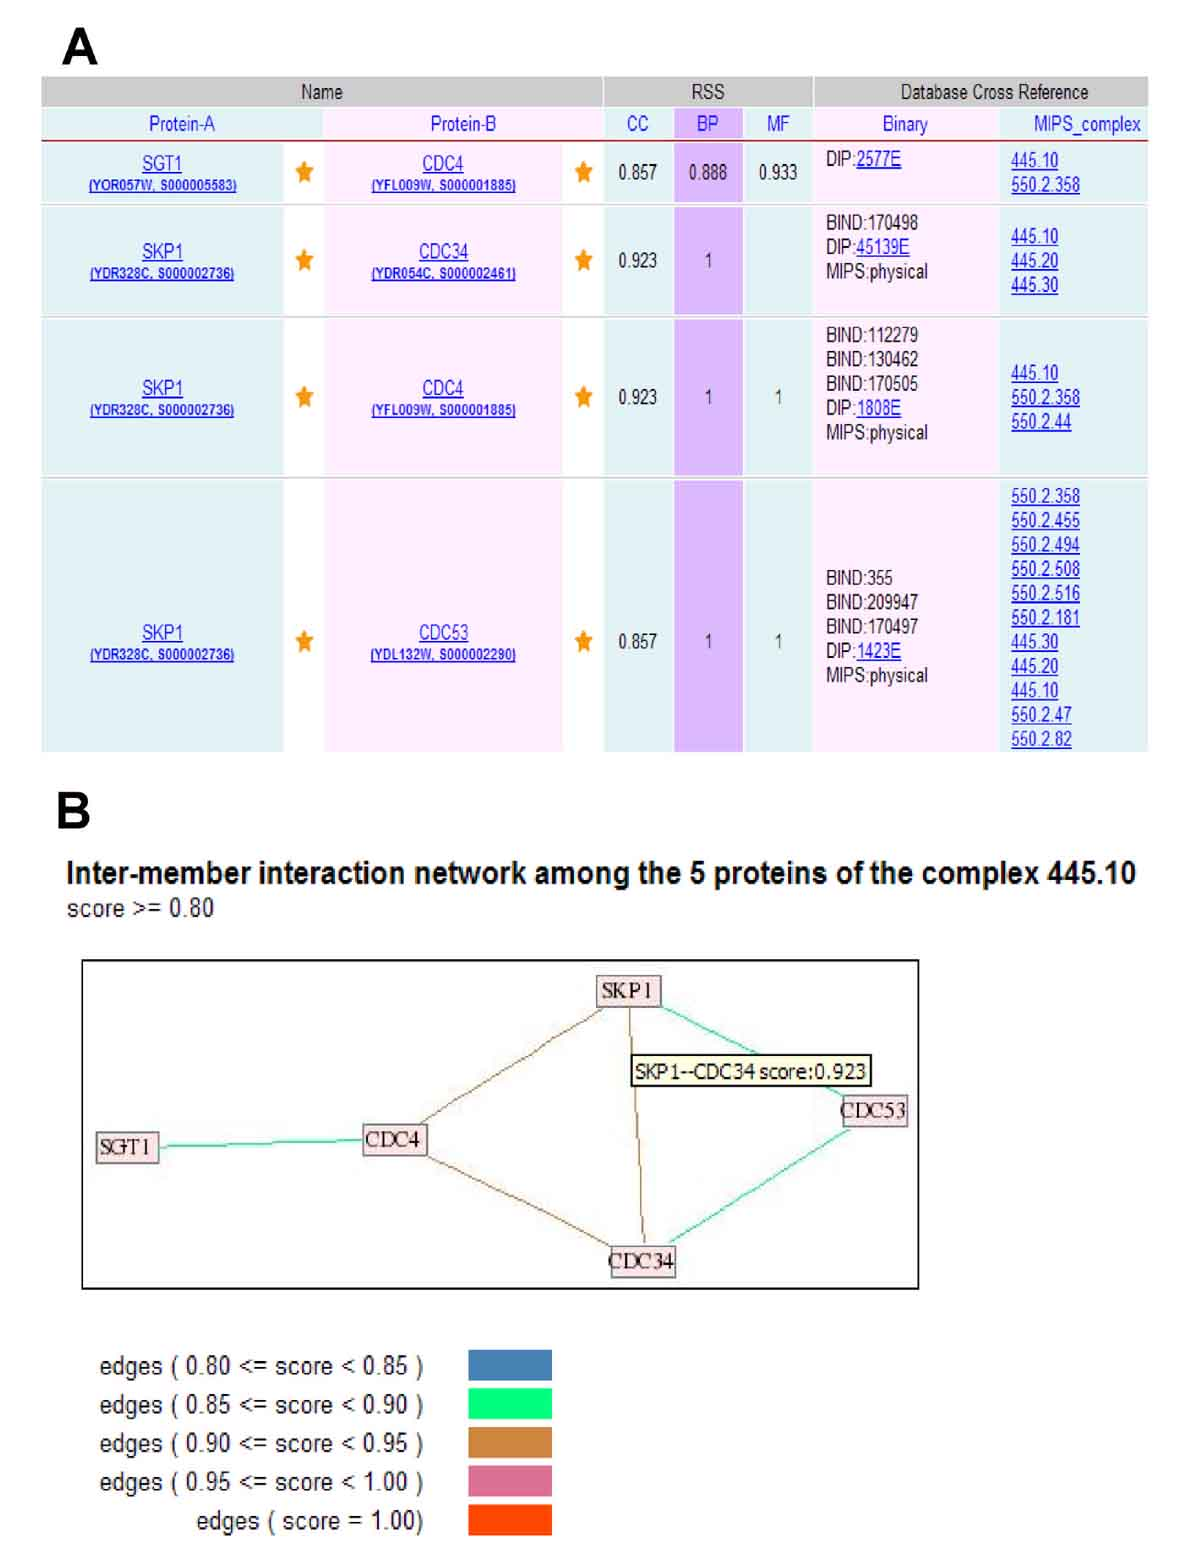 https://static-content.springer.com/image/art%3A10.1186%2F1471-2105-7-S5-S16/MediaObjects/12859_2006_Article_1366_Fig2_HTML.jpg